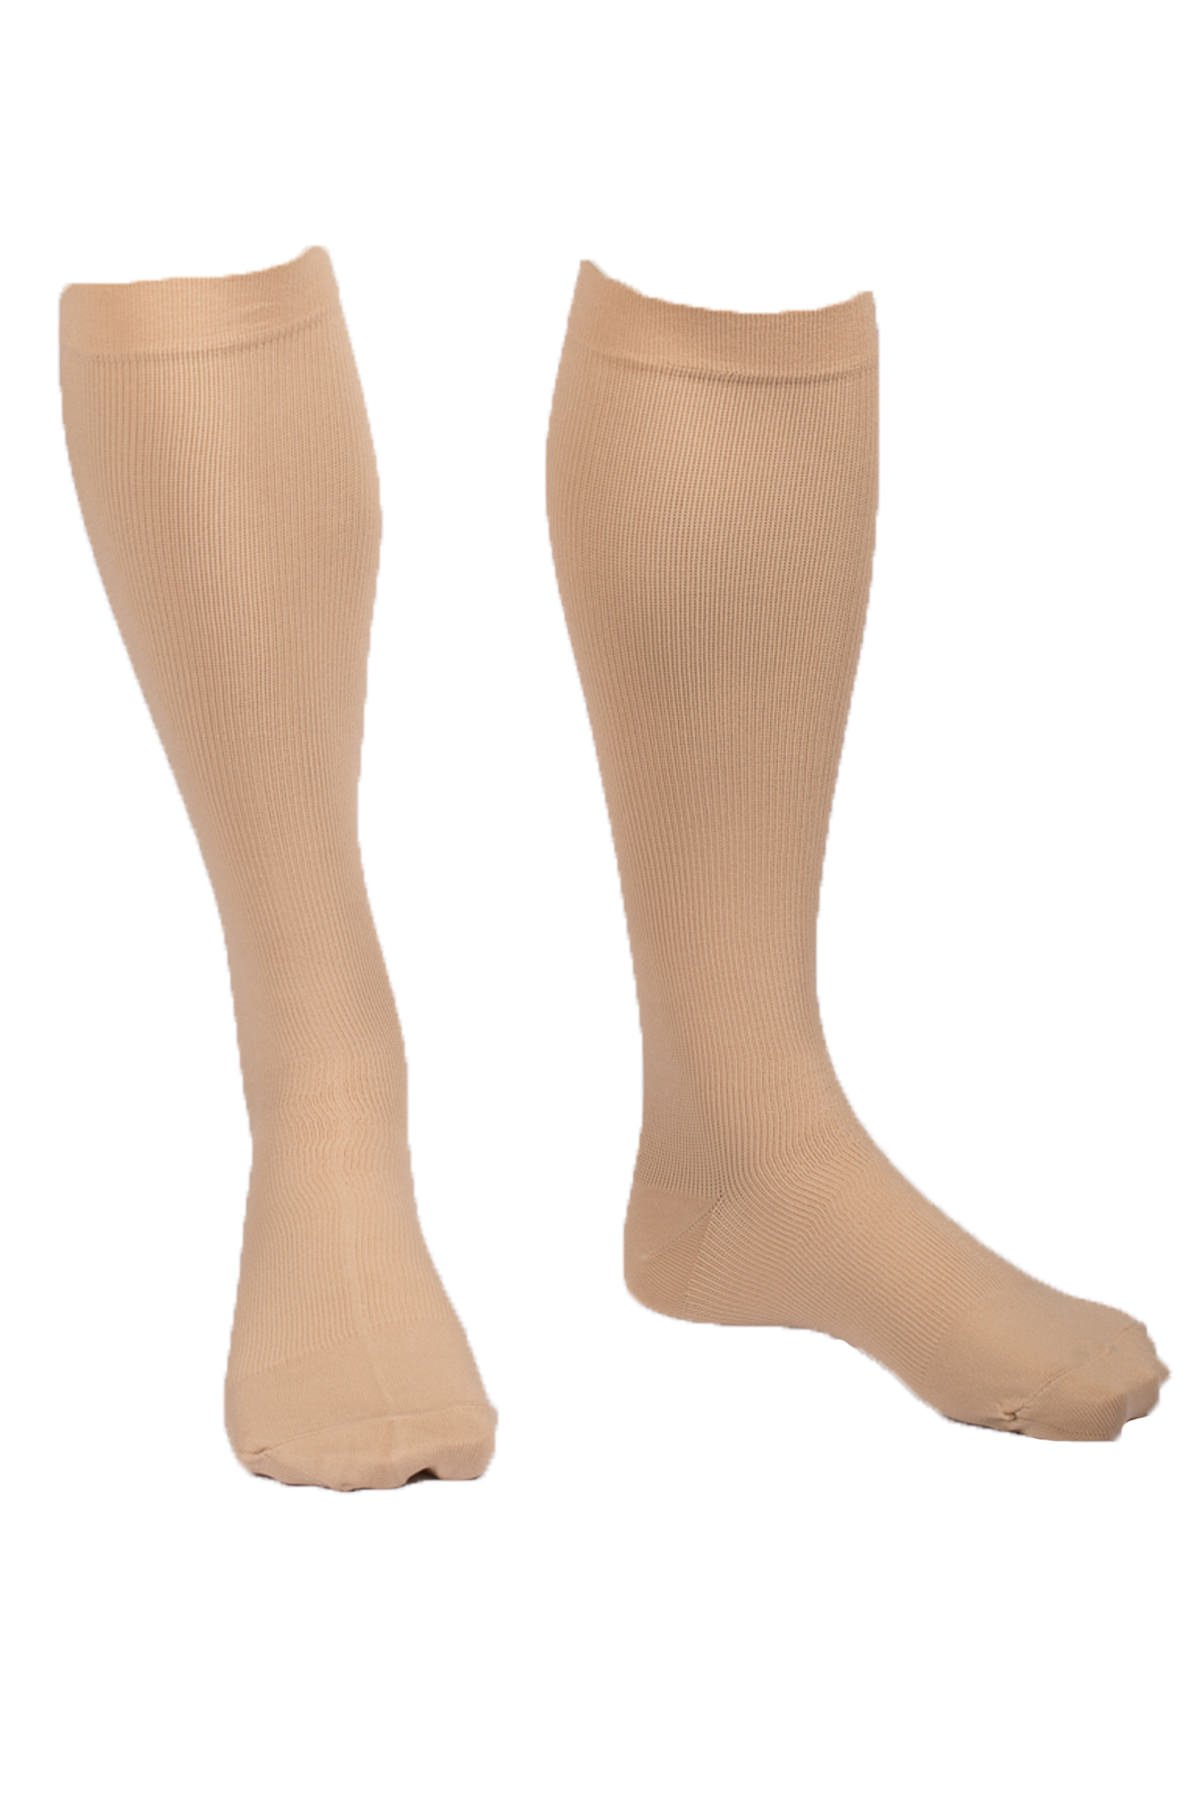 EvoNation Men's USA Made Graduated Compression Socks 15-20 mmHg Moderate Pressure Medical Quality Knee High Orthopedic Support Stockings Hose - Best Comfort Fit, Circulation, Travel (Large, Tan)